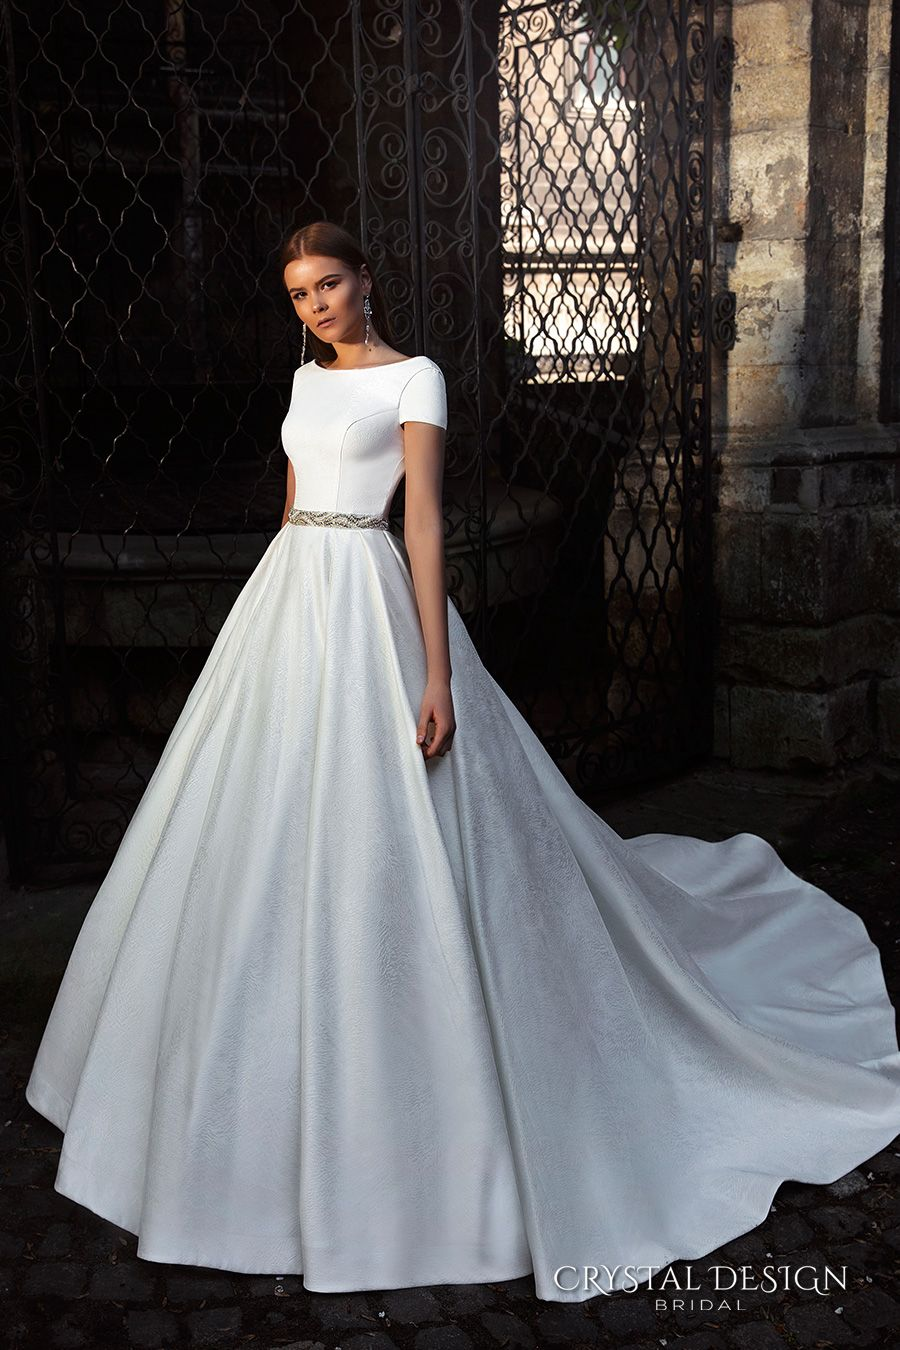 Crystal design wedding dresses tenten pinterest elegant